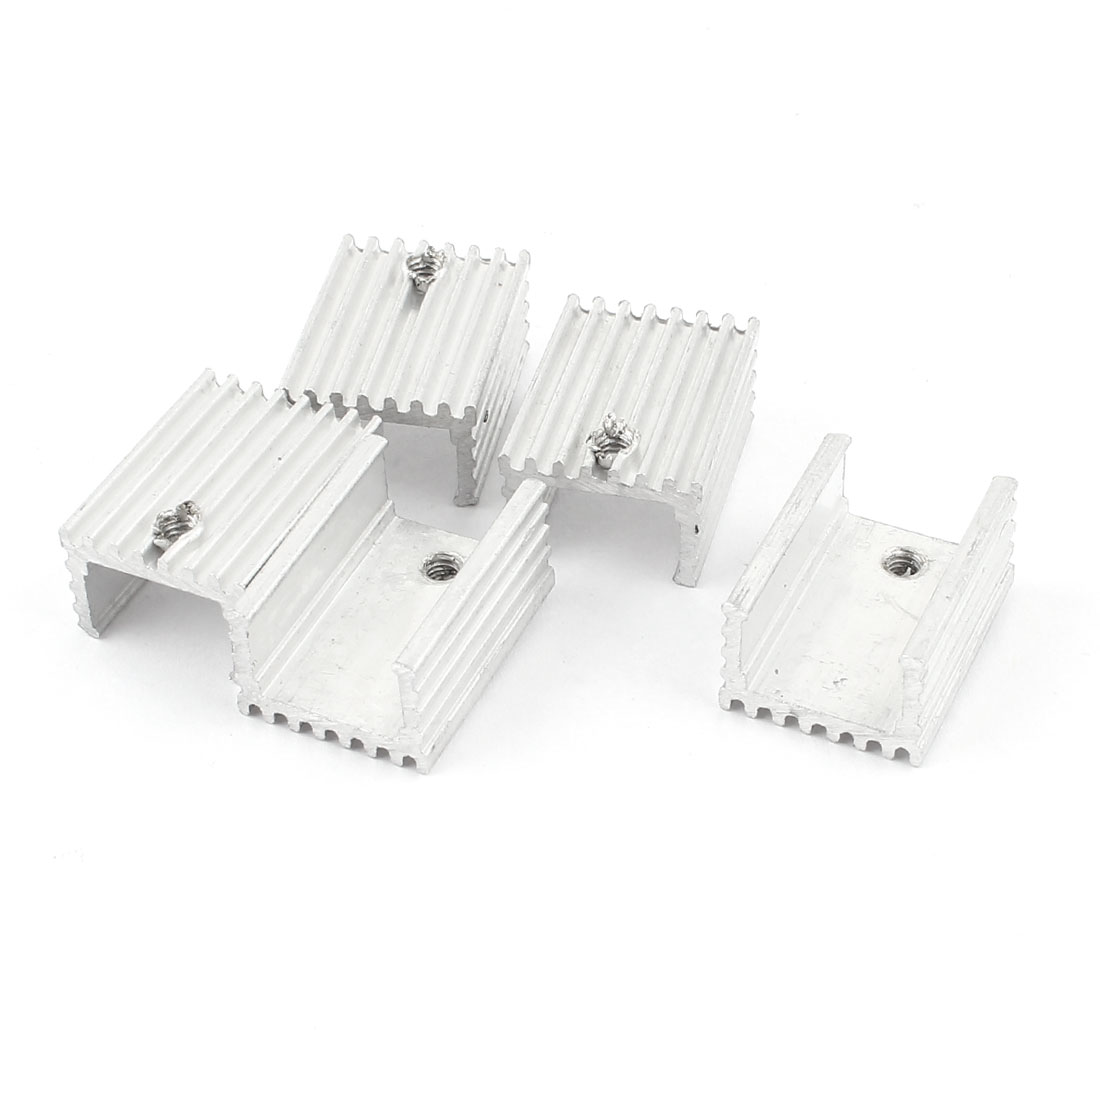 5 Pcs Silver Tone Aluminum Heat Sink 20x15x10mm for TO-220 Transistors